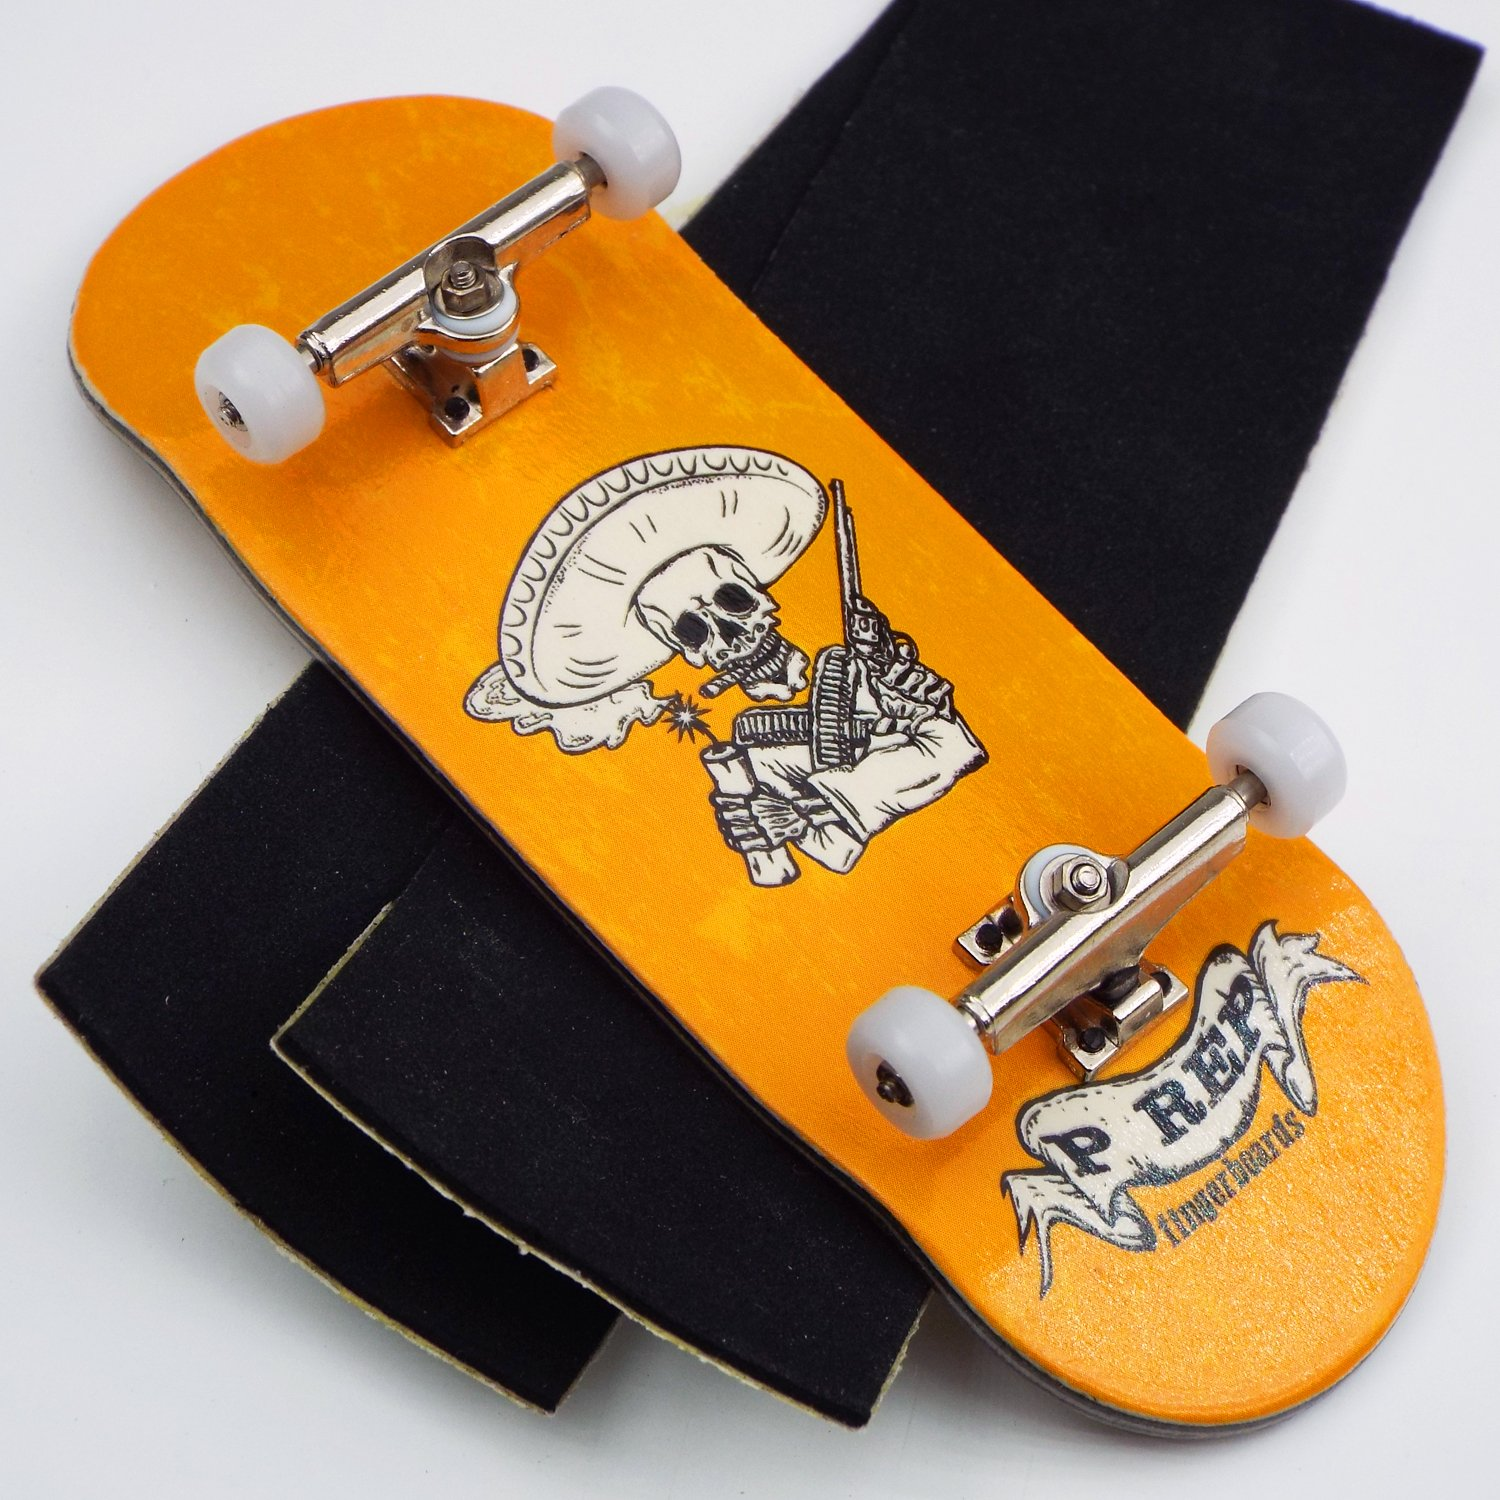 P-REP TUNED Complete Wooden Fingerboard 34mm x 100mm - Bandito